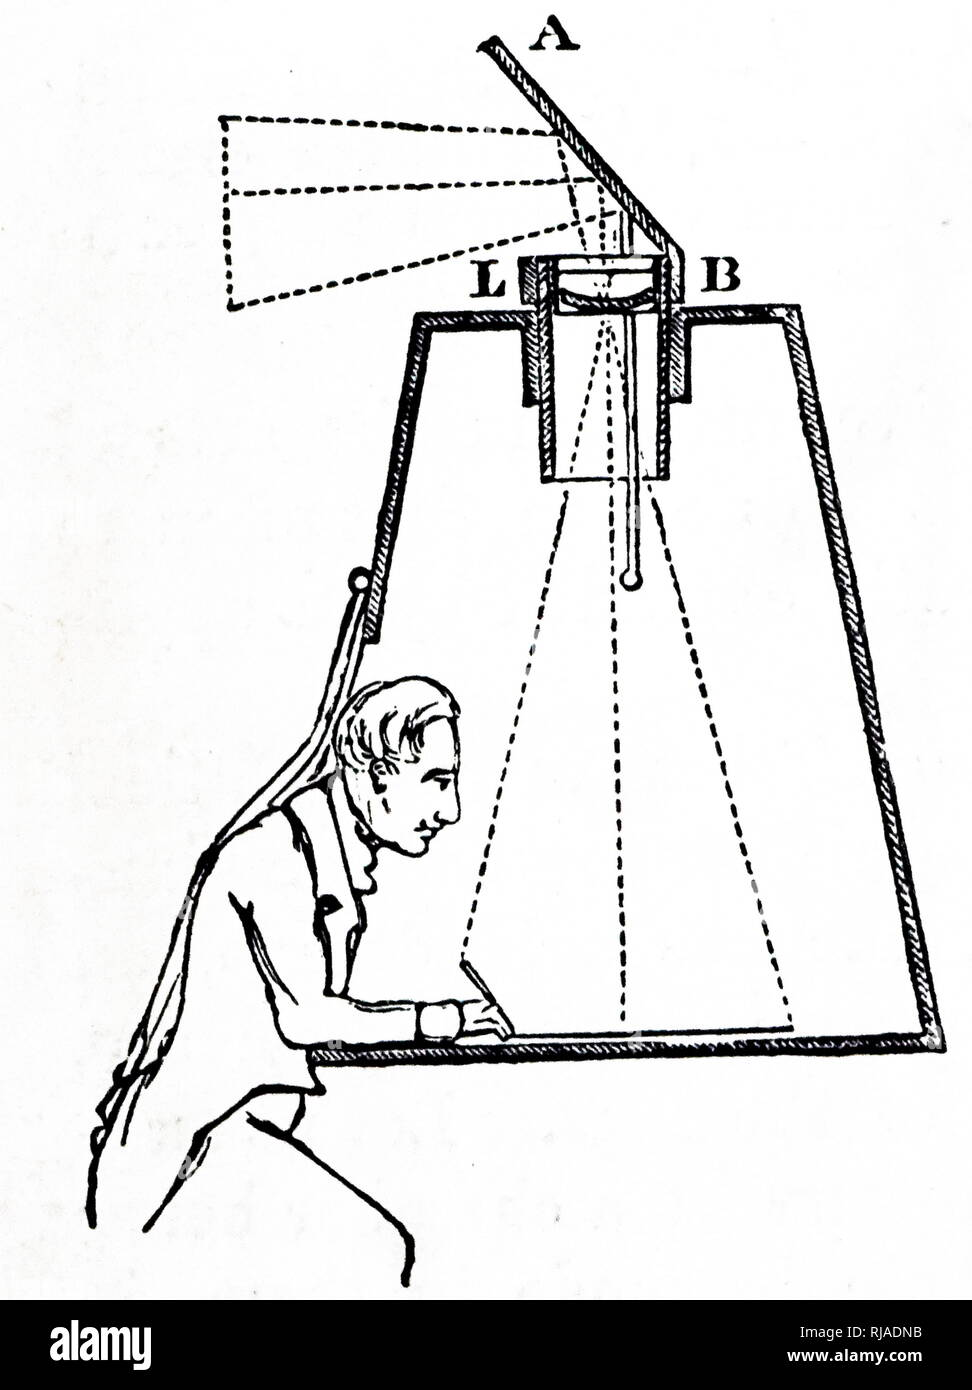 hight resolution of camera obscura illustration stock photos camera obscura diagram of a simple camera obscura the ancestor of the photographic